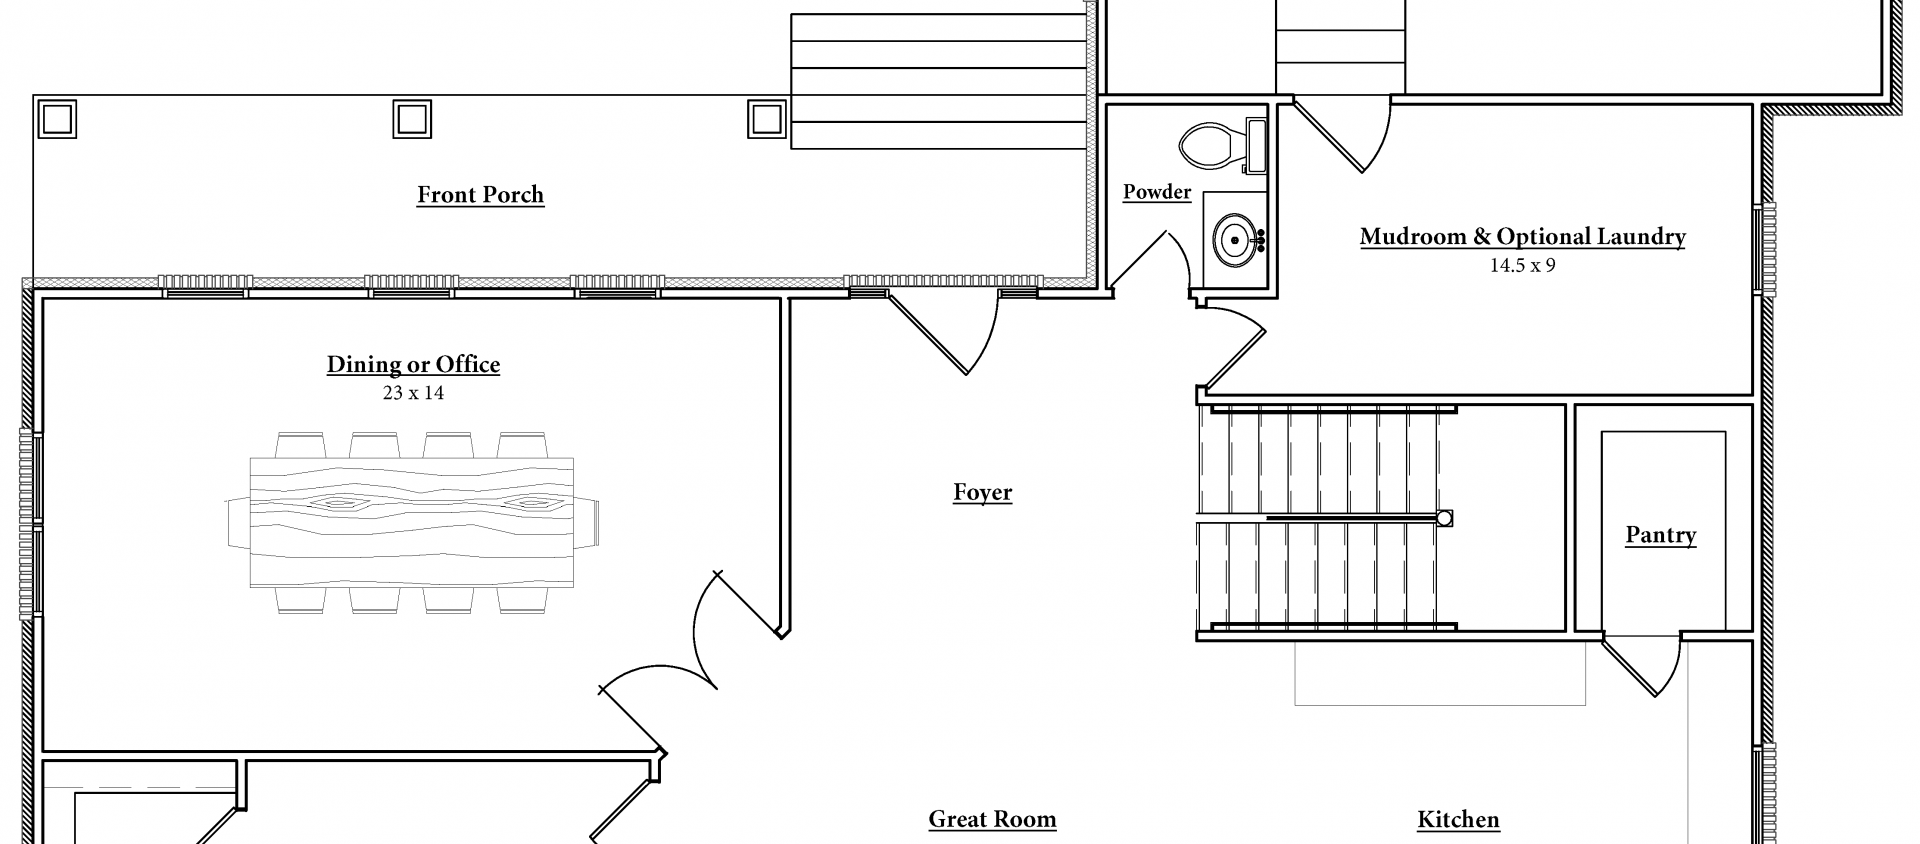 1770_Proffit_First_Floor_Plan.png